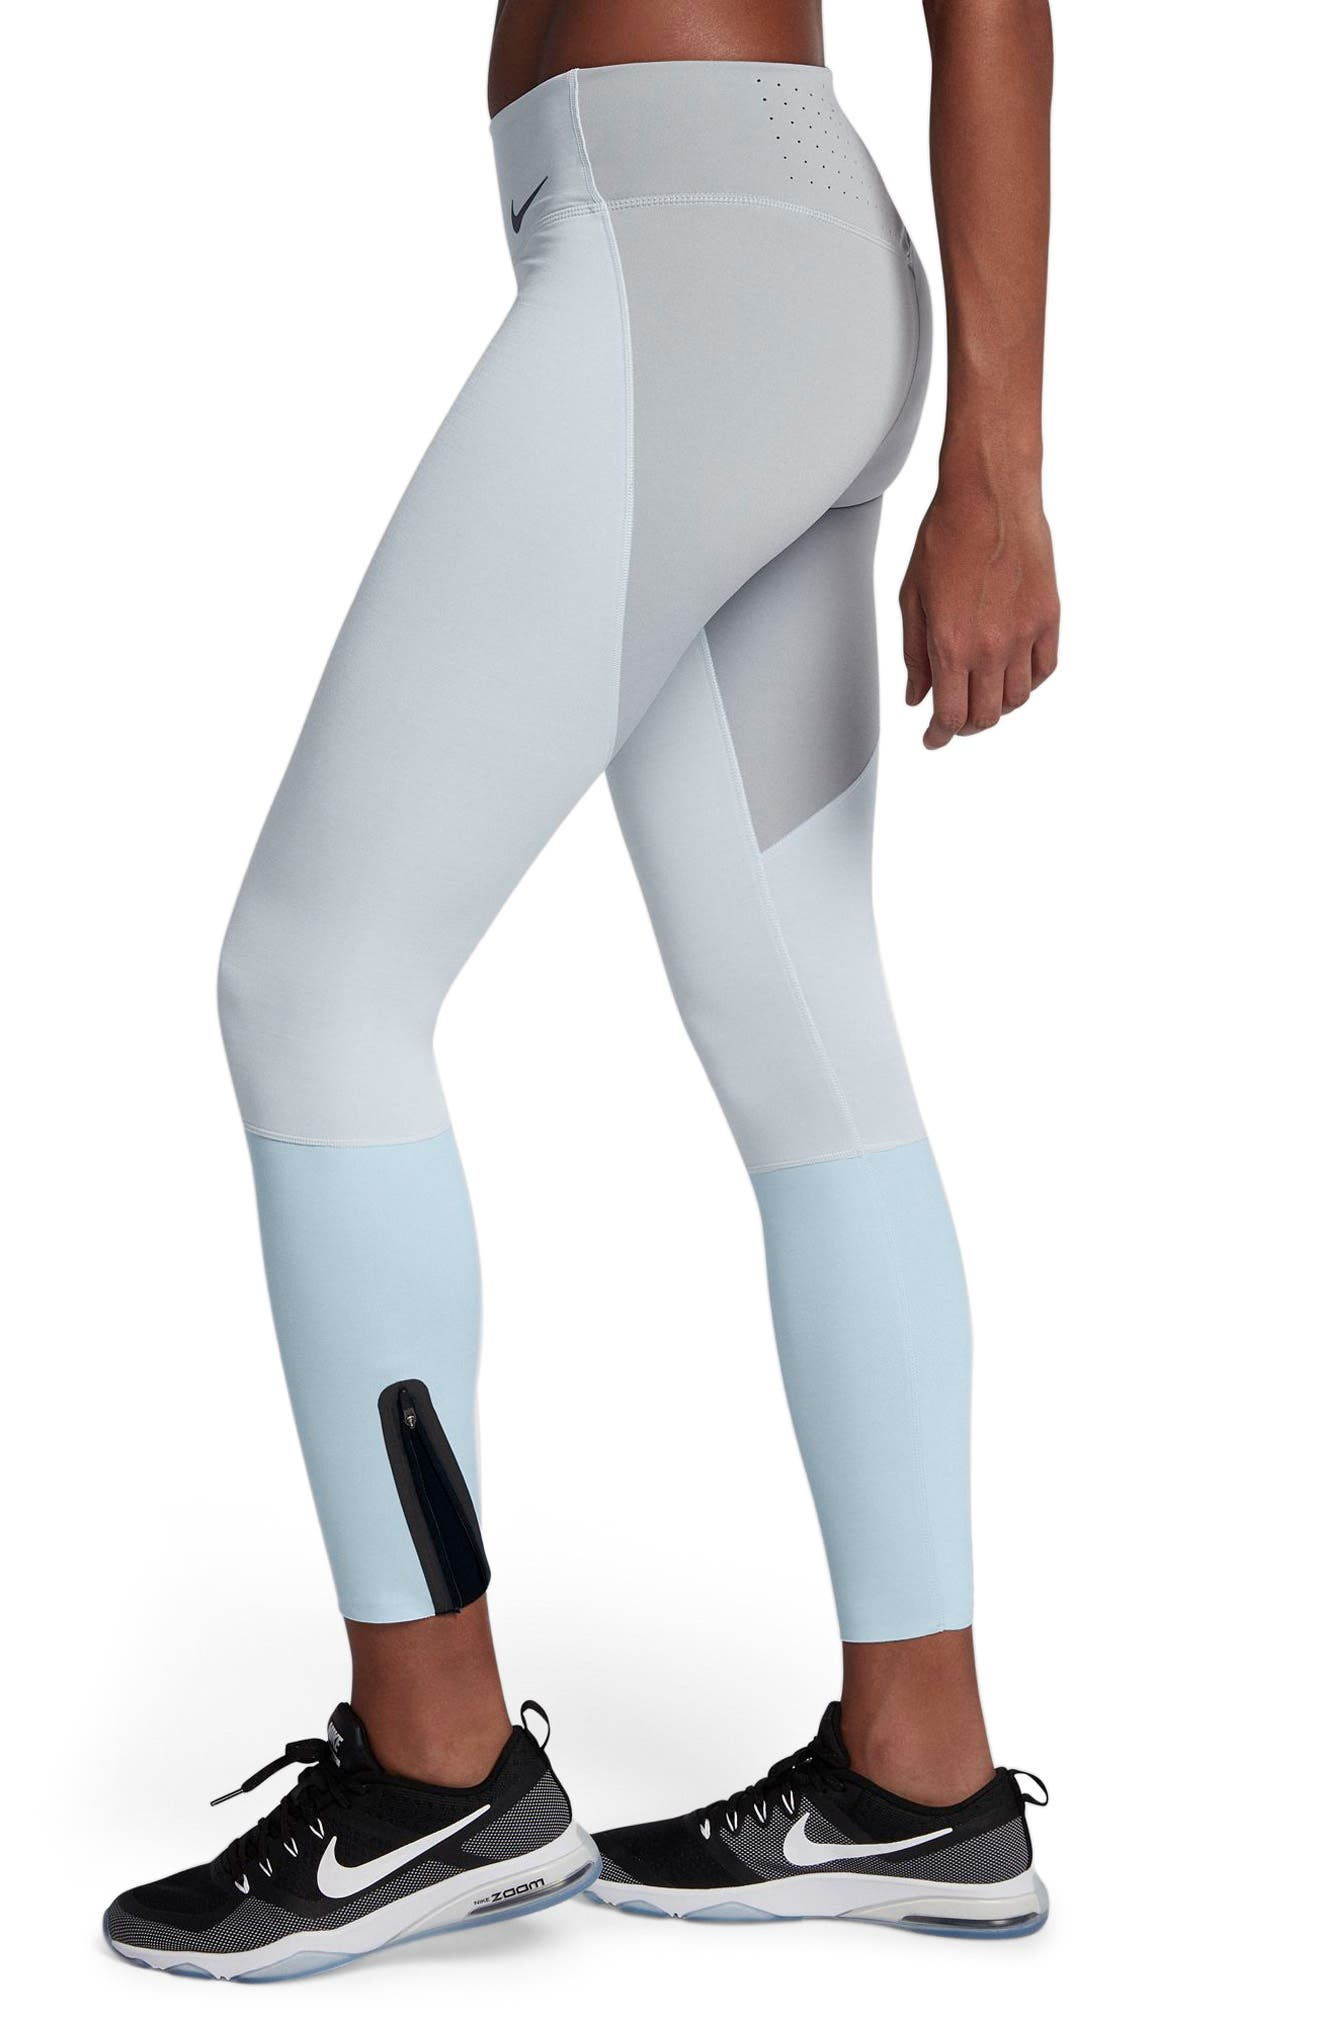 Legendary Mid Rise Zip Cuff Training Tights,                             Alternate thumbnail 3, color,                             Platinum/ Heather/ Blue/ Black